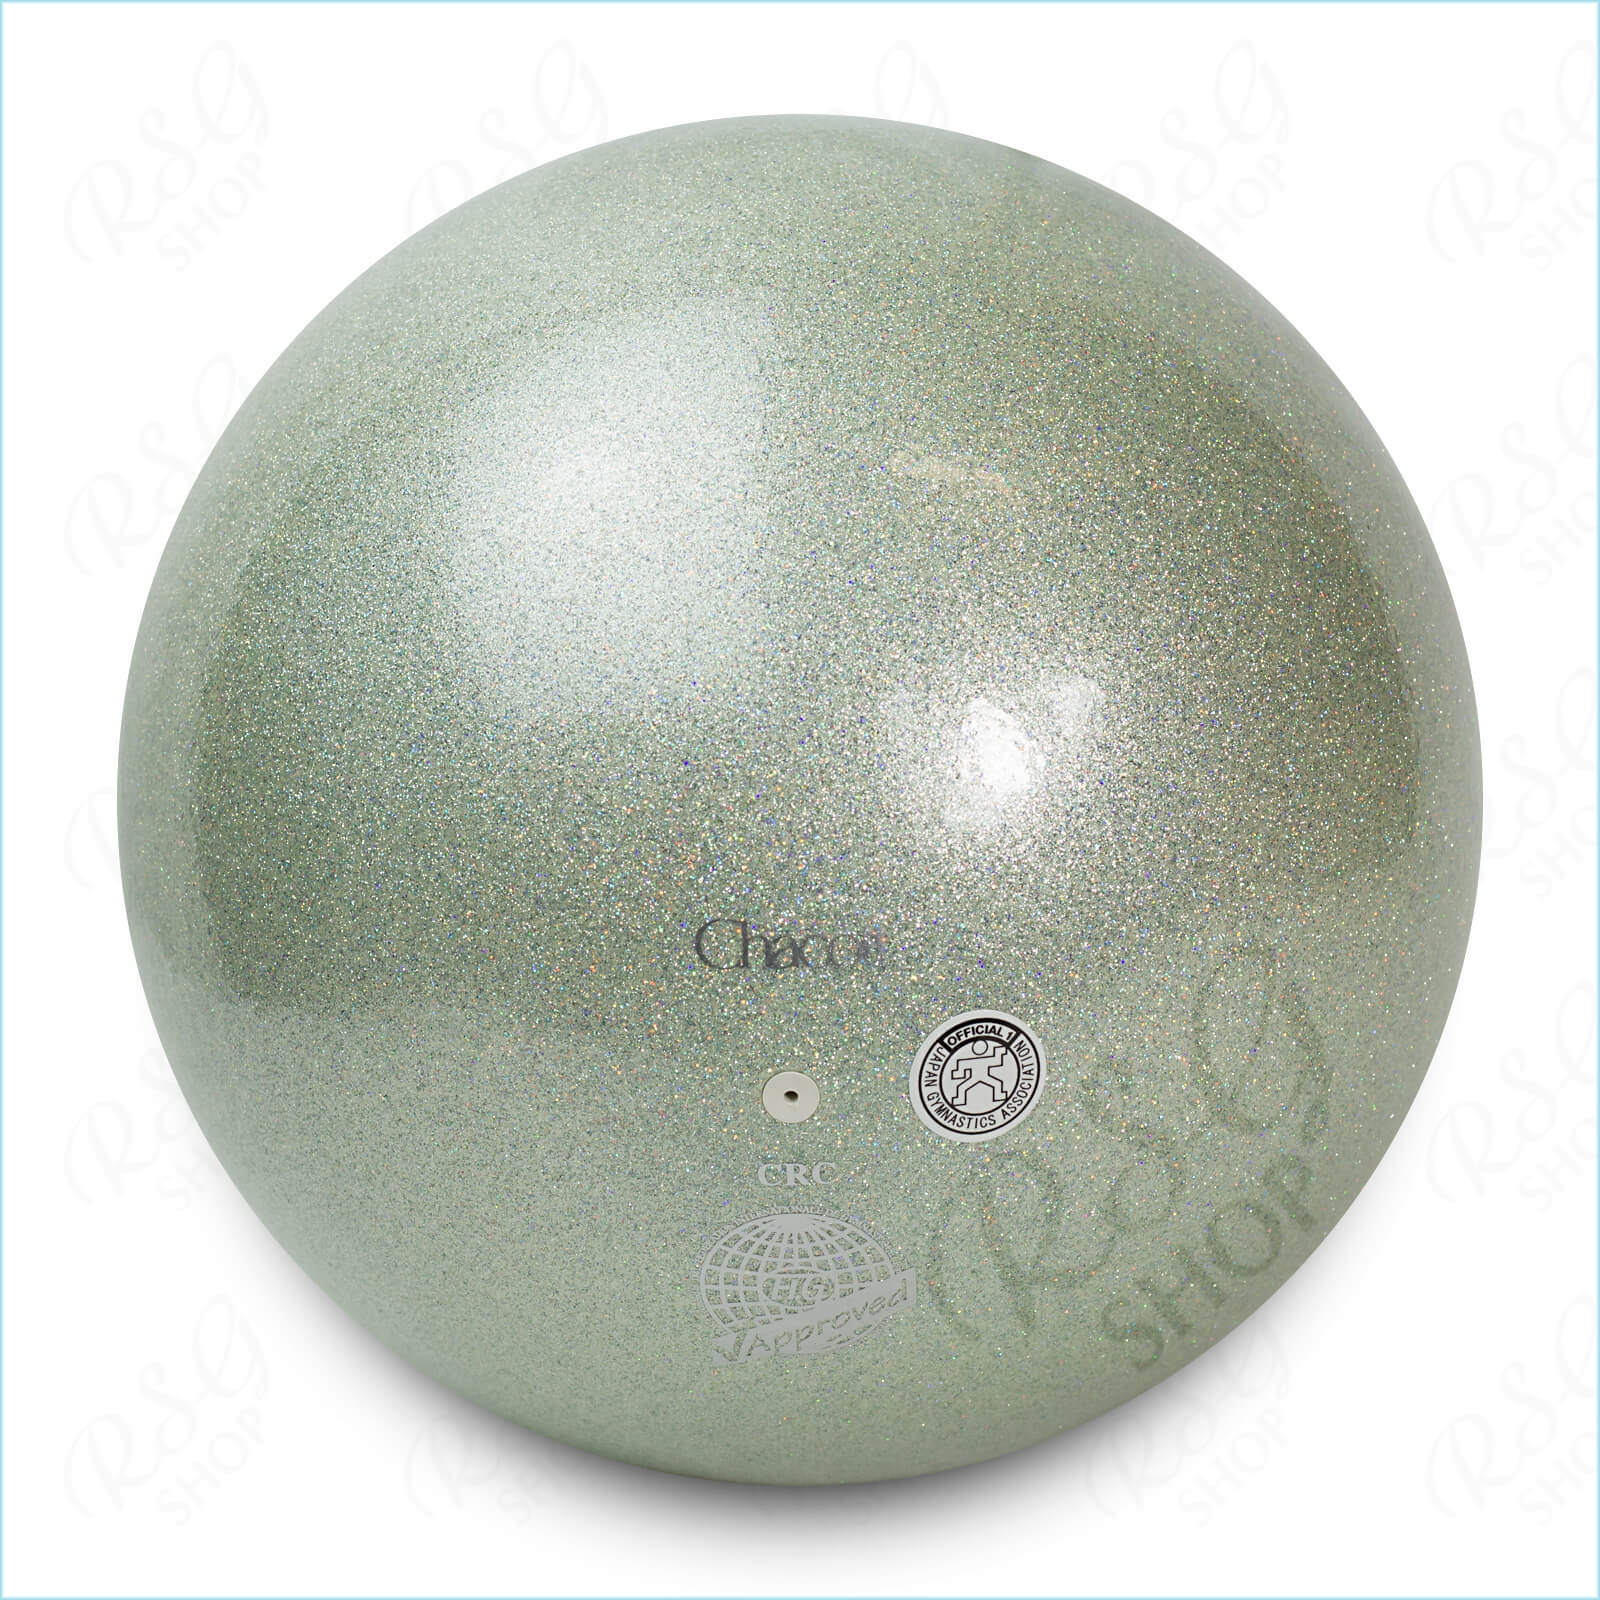 ball_chacott_prism_ice_green_430